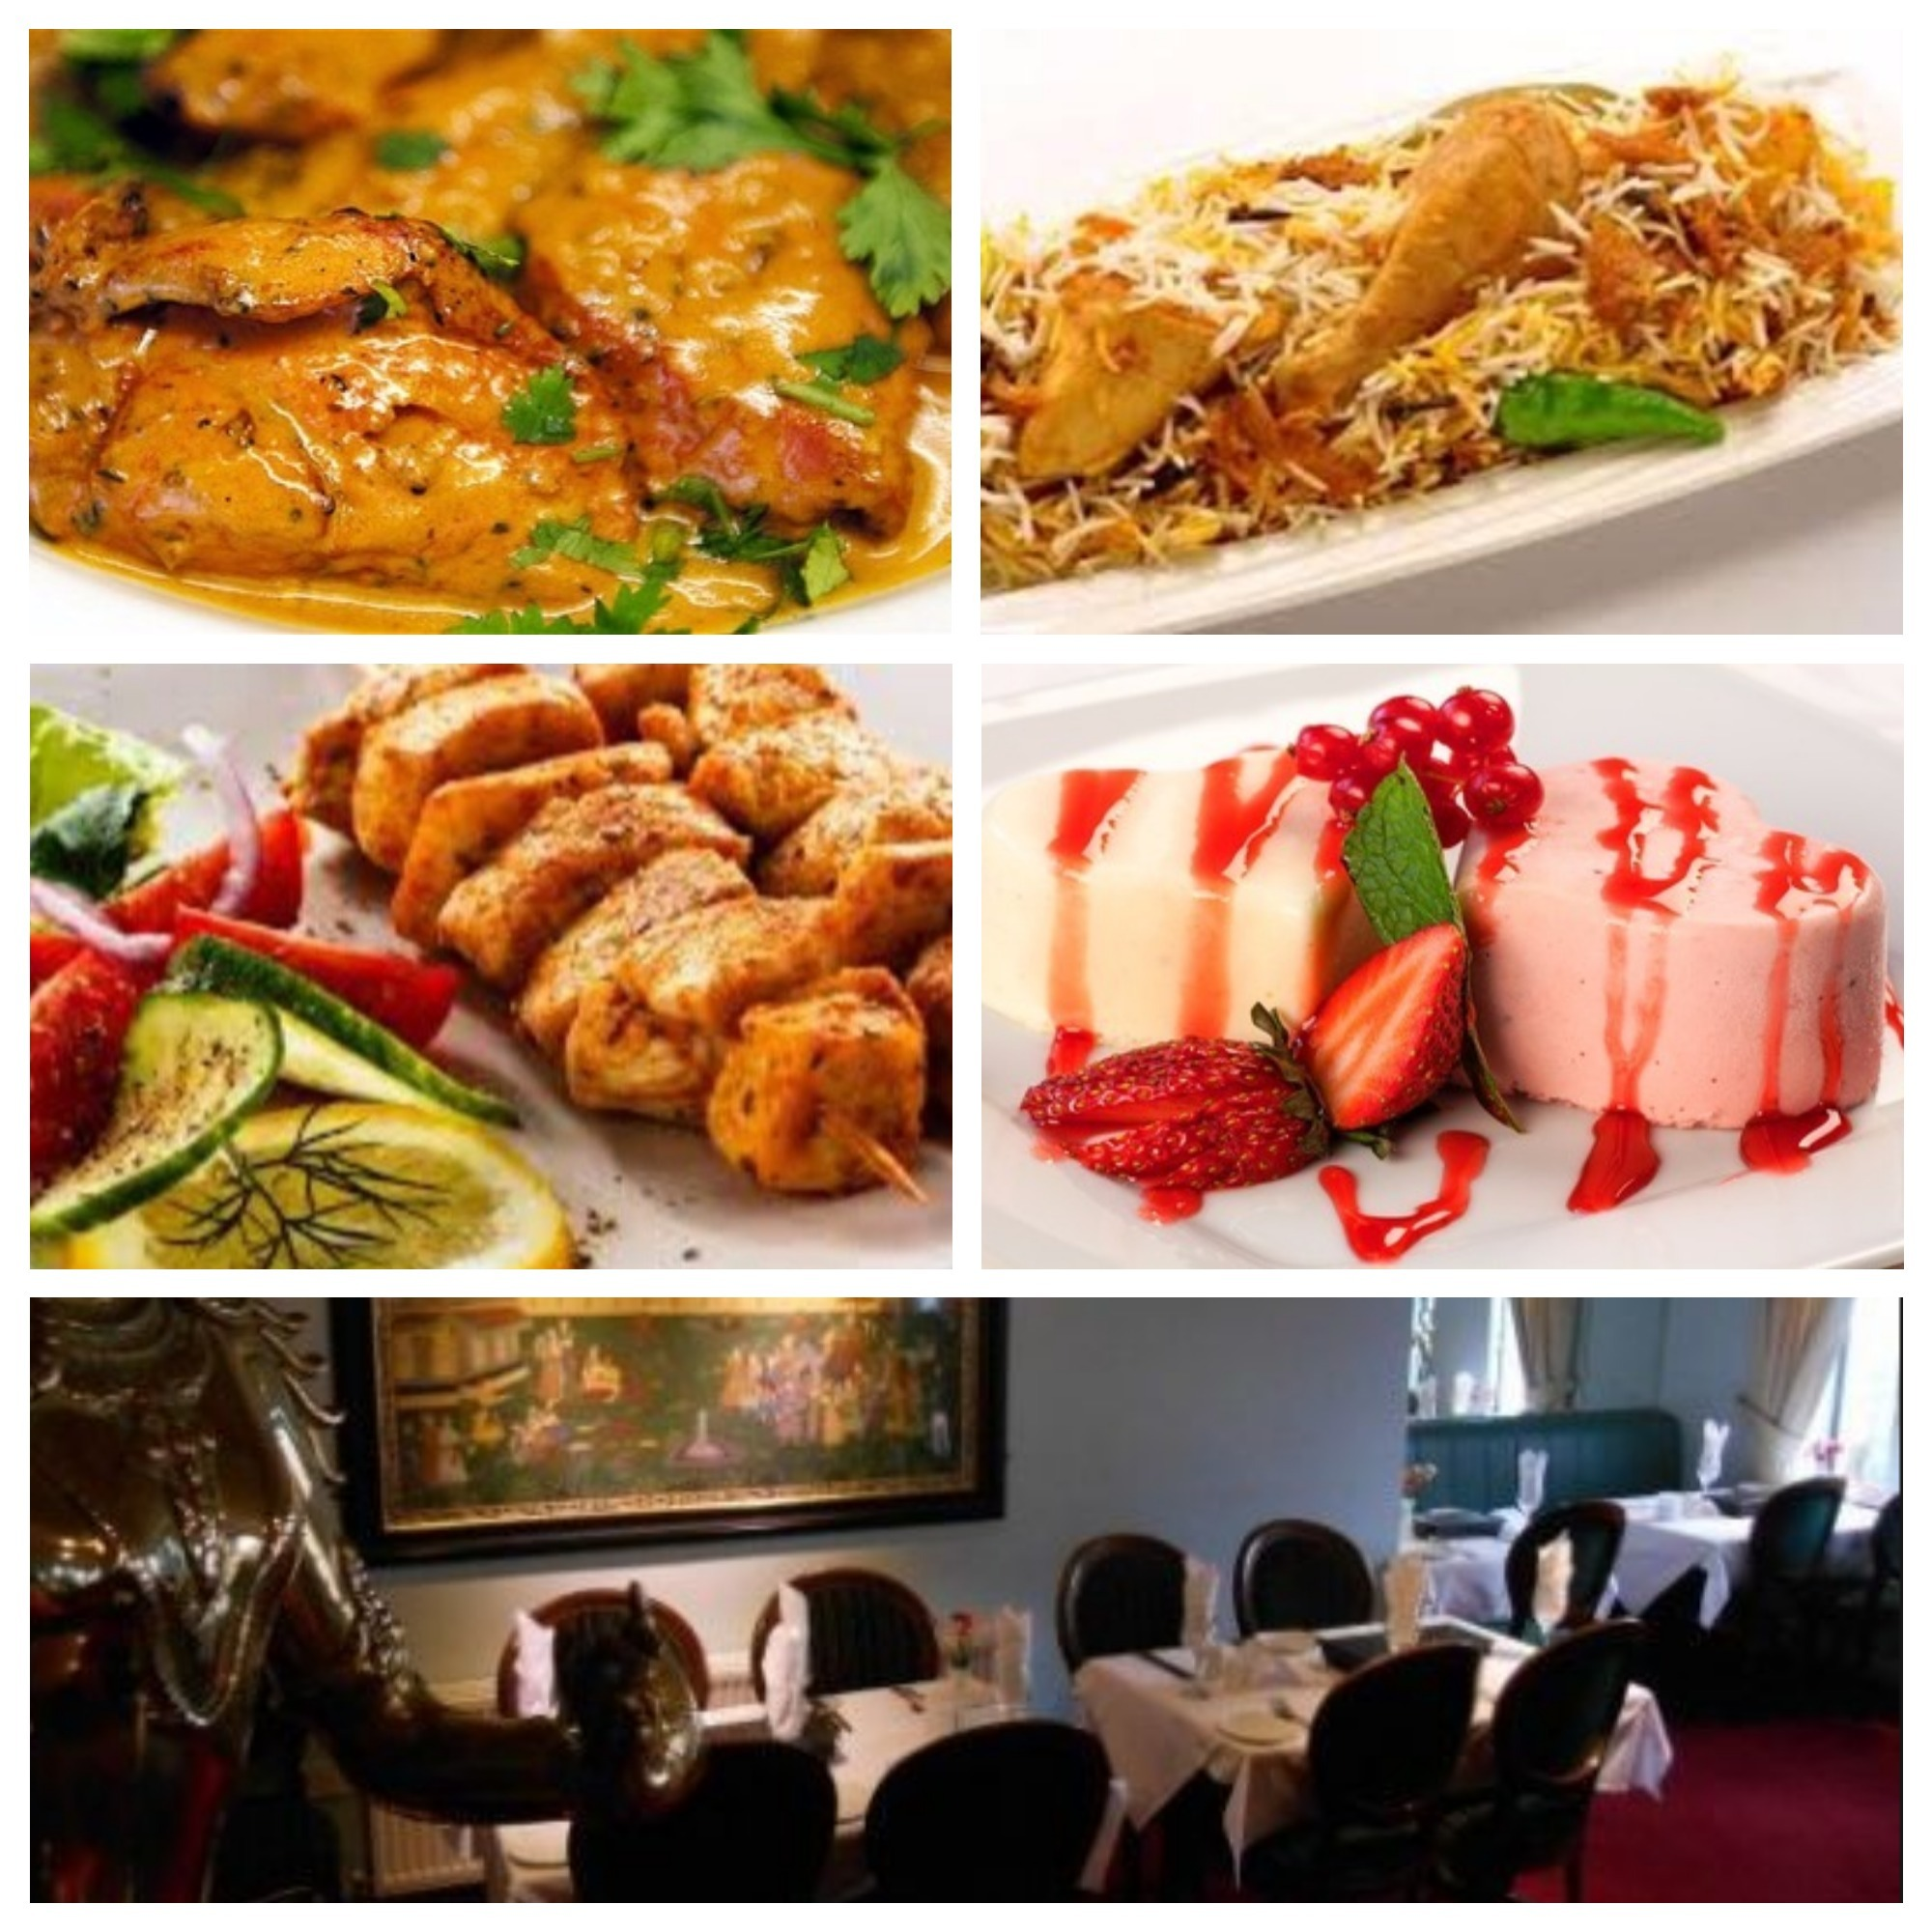 deal of the day-meghna tandoori-meal for two-dine out in dublin-meal for two-dining out-dine out-deal for two-cheap eats dublin-dublin-terenure